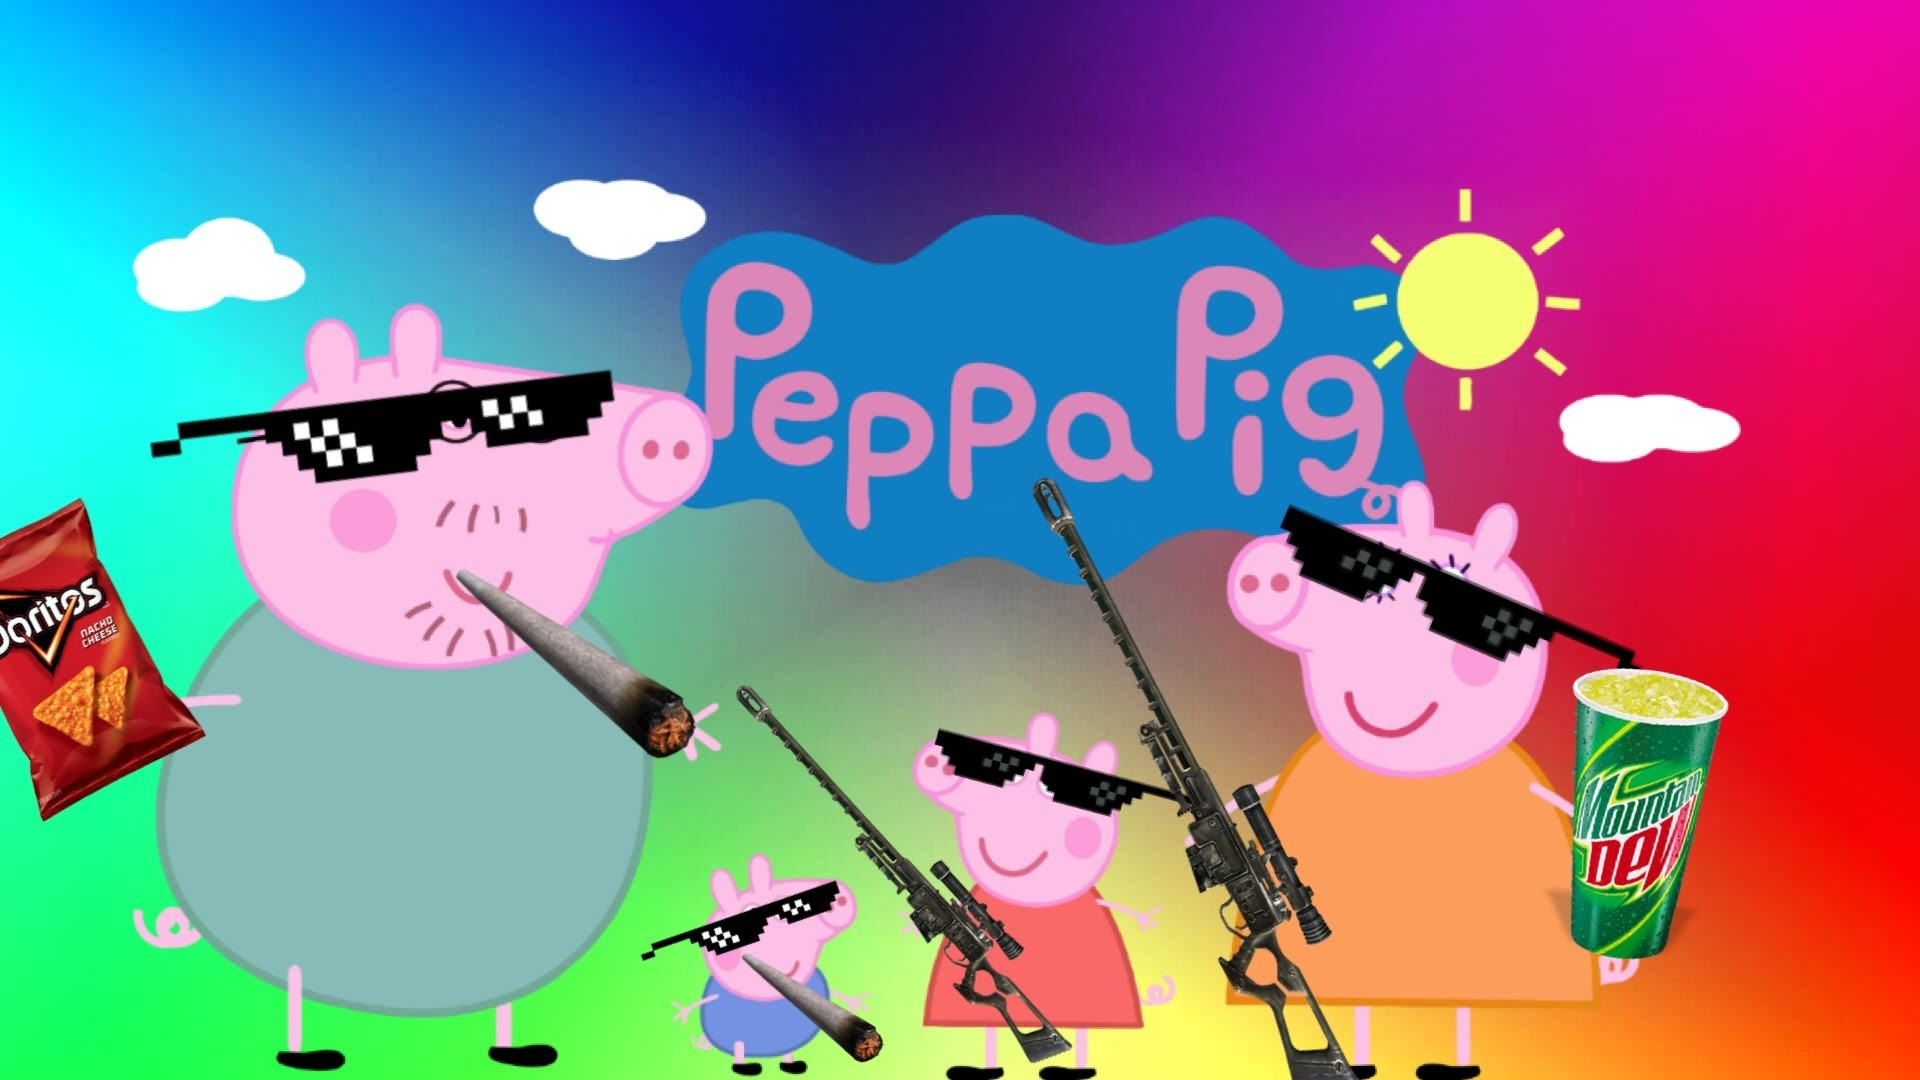 1920x1080 Peppa Pig Wallpapers The Best 59 Images Mlg Wallpaper Peppa Pig 1920x1080 Wallpaper Teahub Io